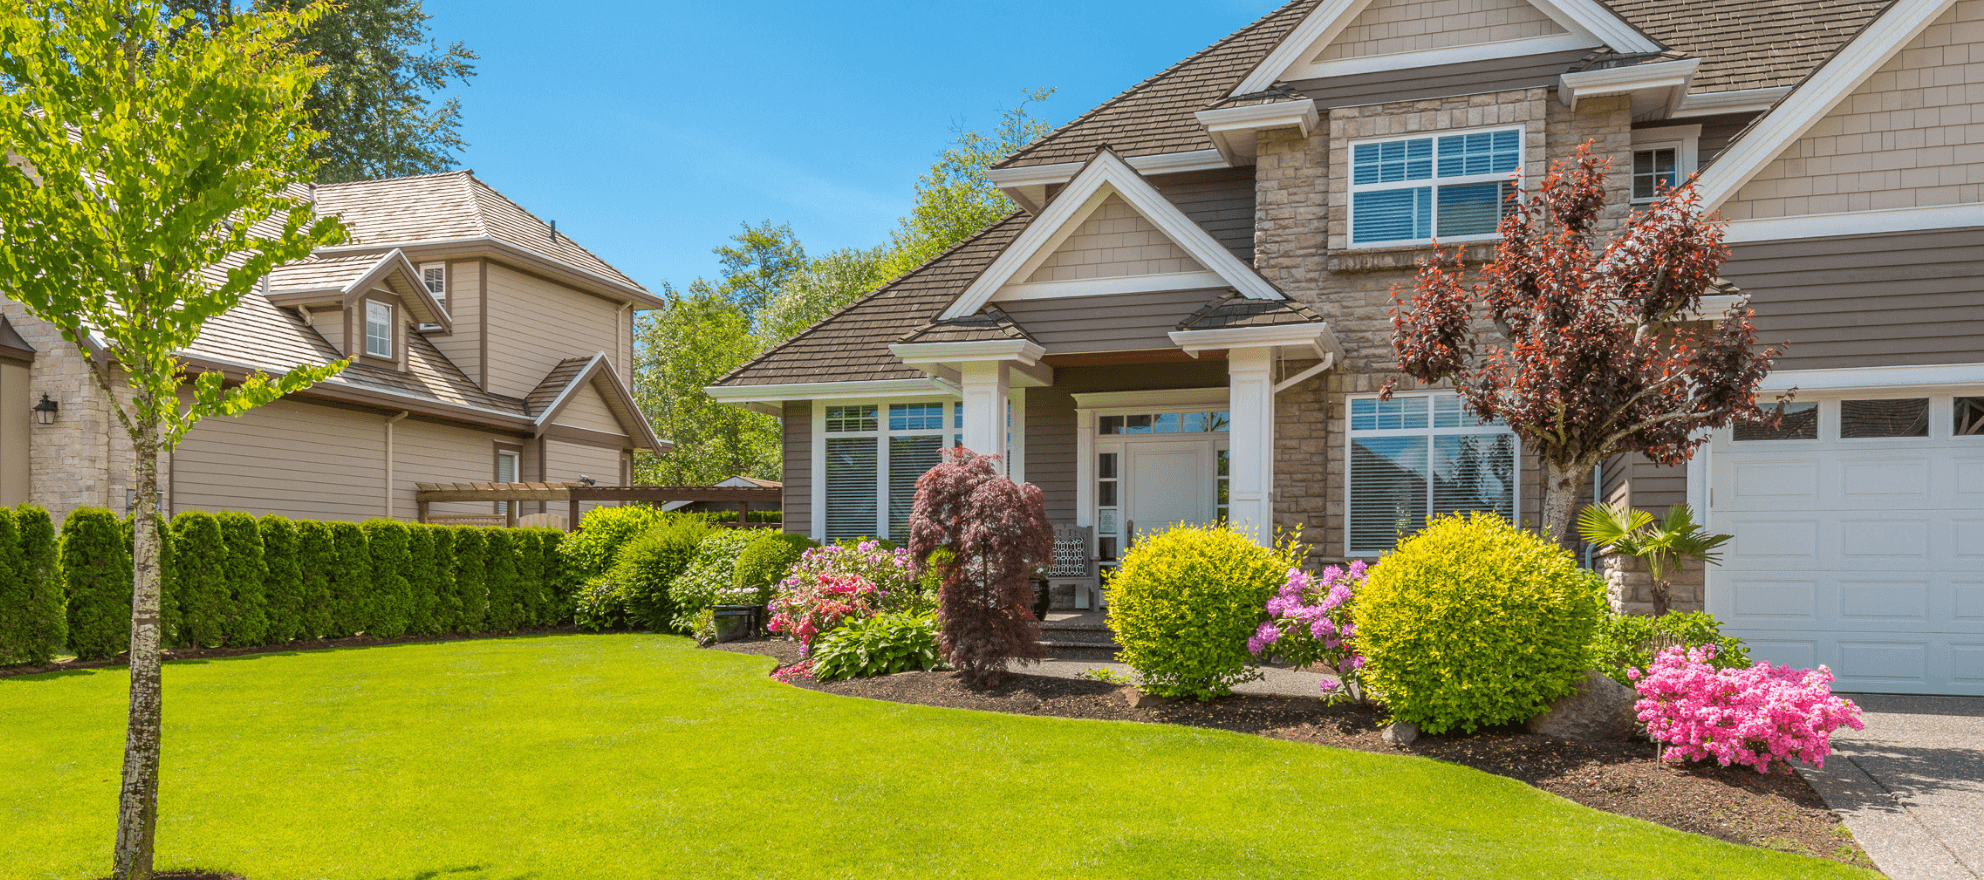 Quick Curb Appeal Landscaping Hacks To Add 12 To Your Home Sale